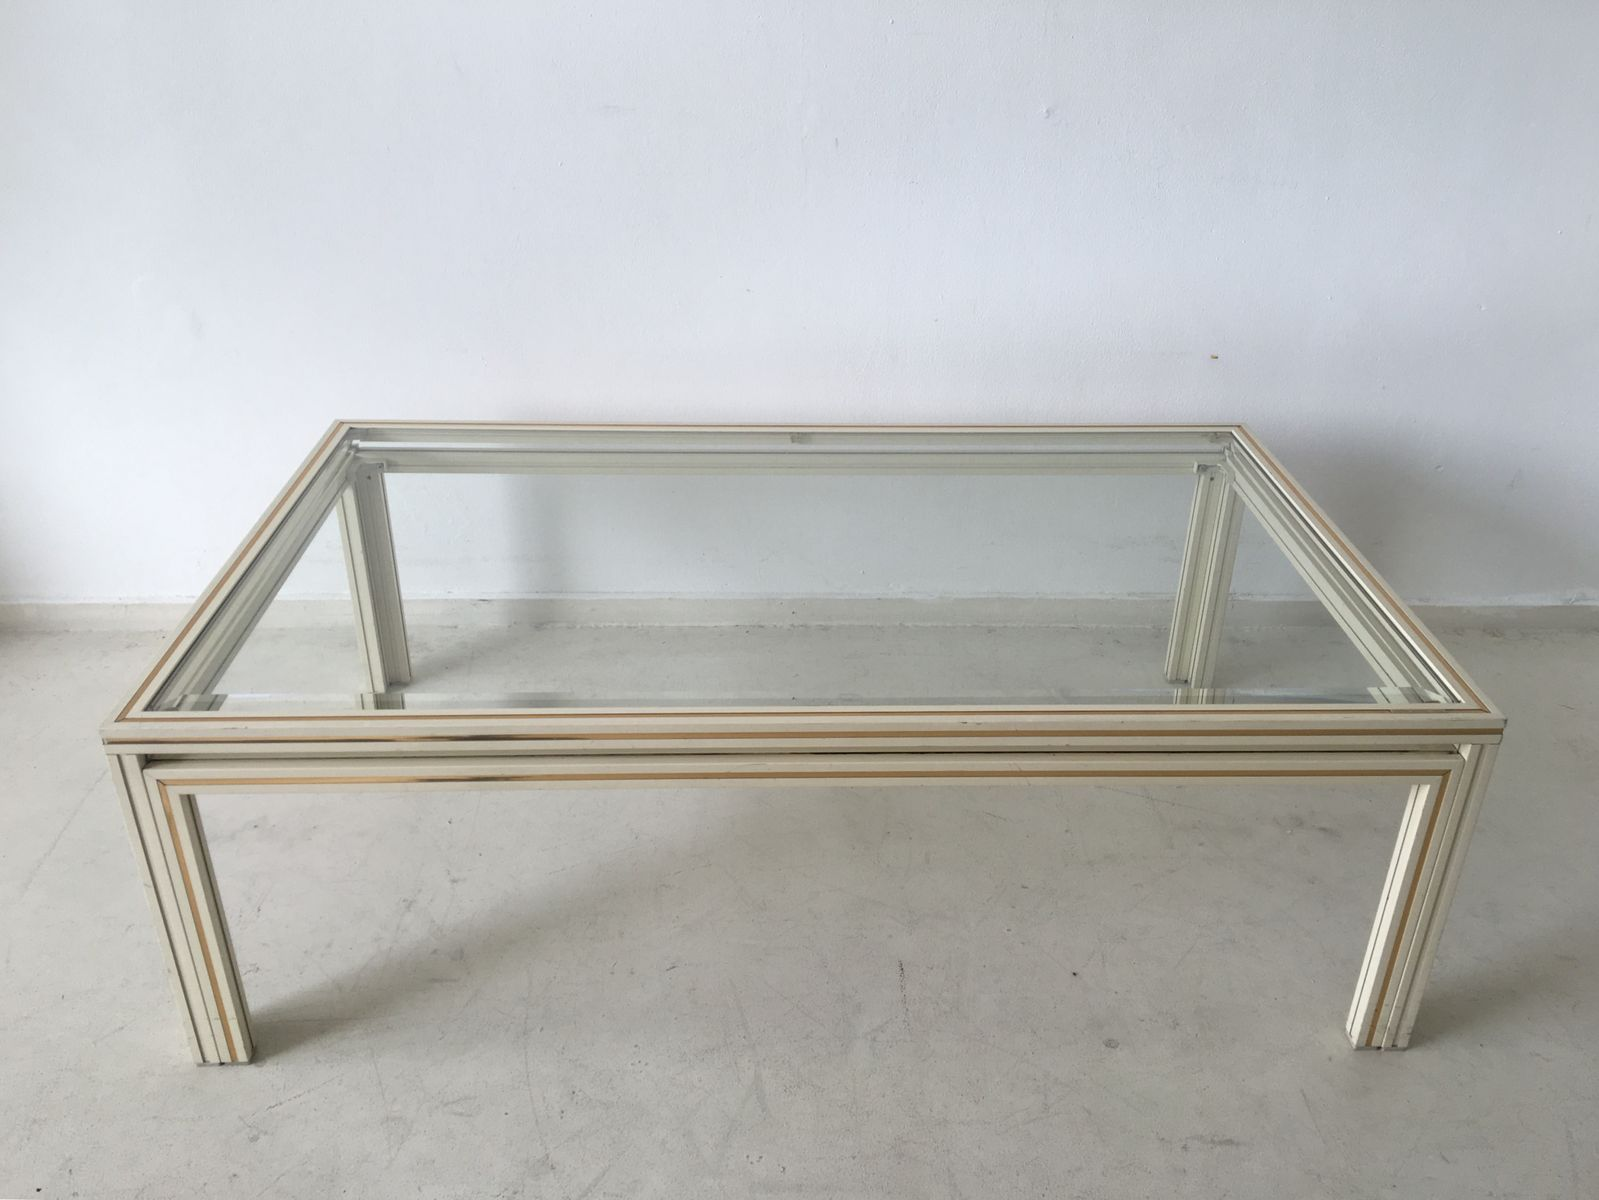 Vintage Parisian Rectangular Glass Coffee Table 1970s for sale at